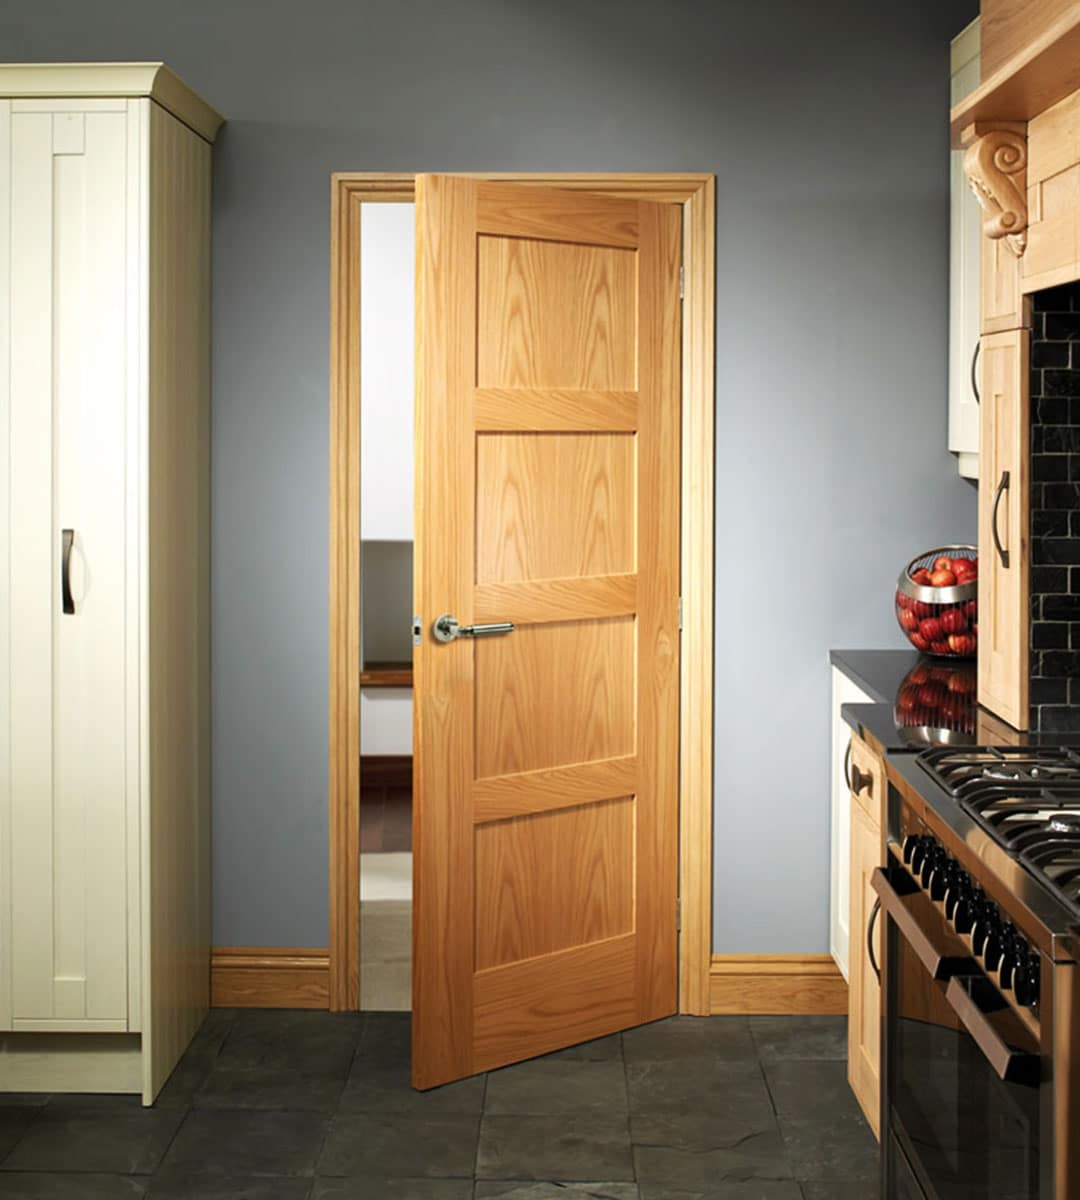 Pannelled doors prime the diy world types and sizes of for Internal bedroom design